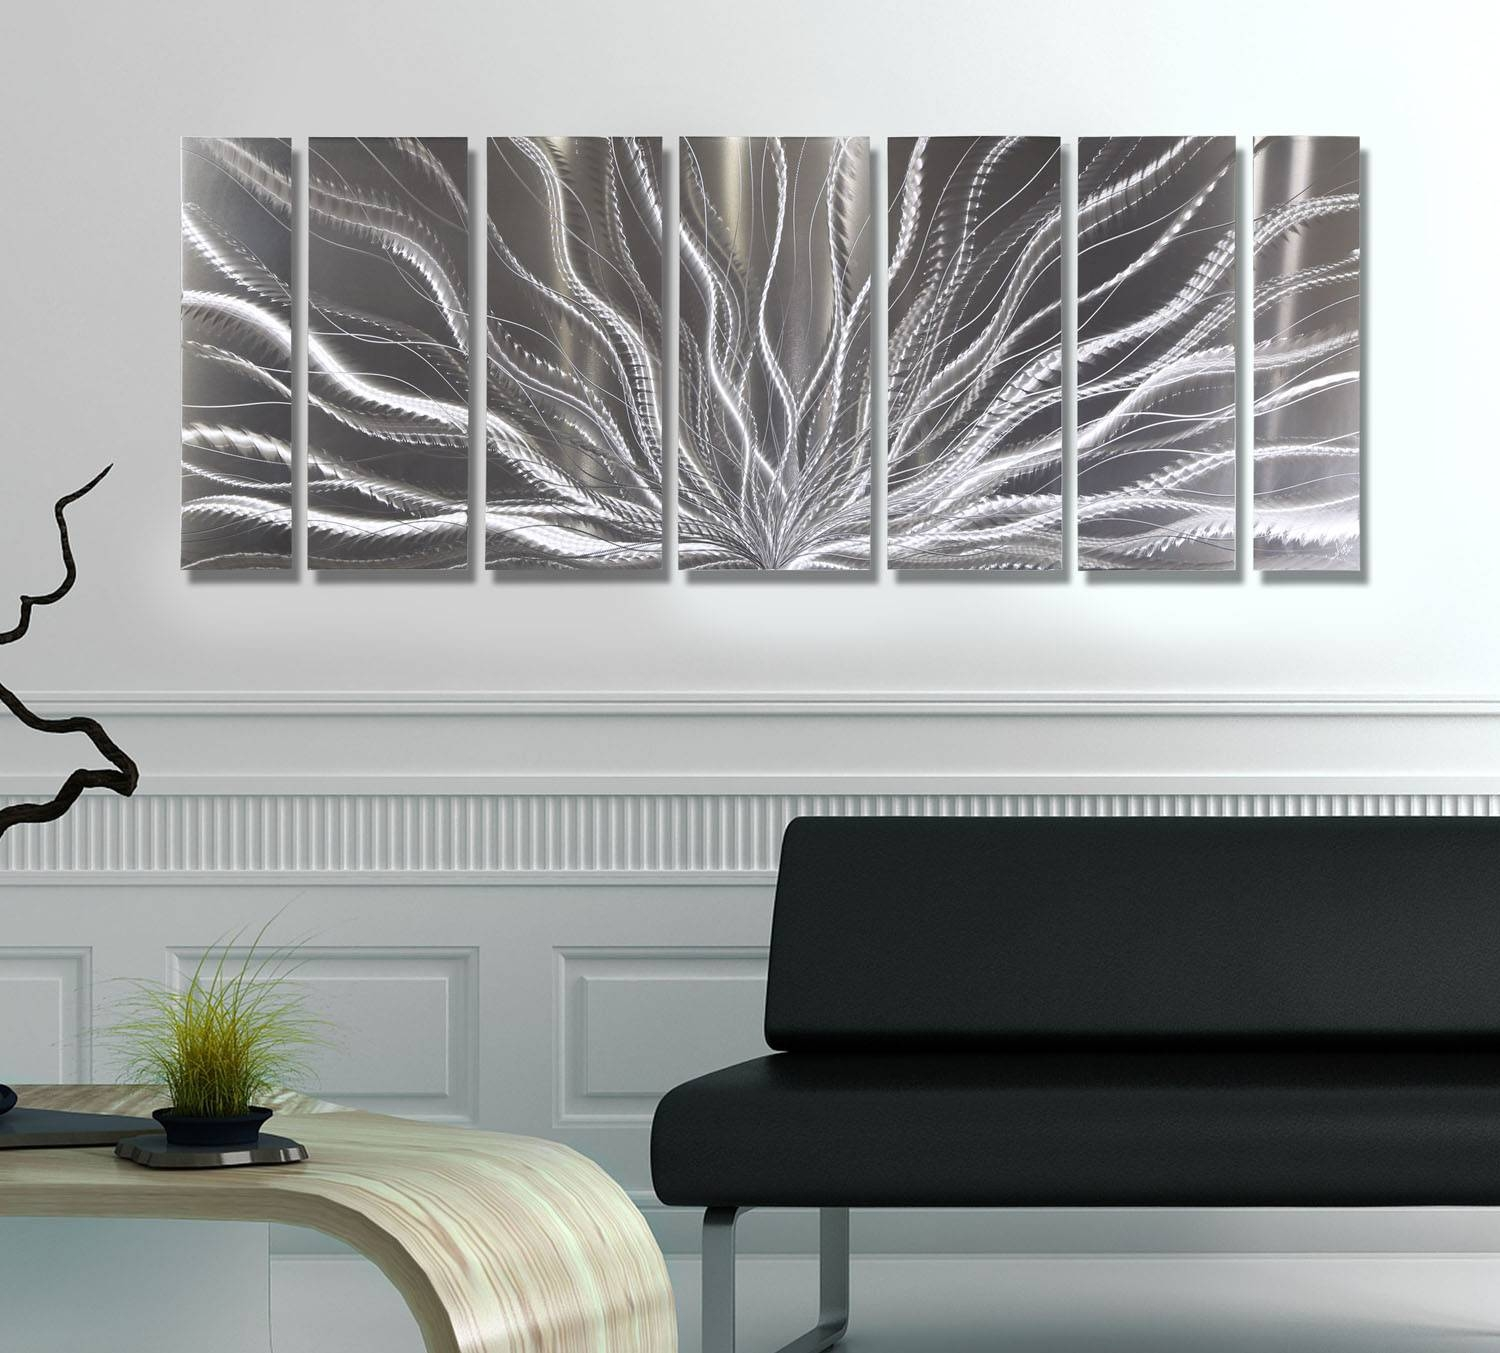 Galactic Expanse – All Natural Silver Metallic Wall Hanging For Best And Newest Modern Wall Art For Sale (View 5 of 20)